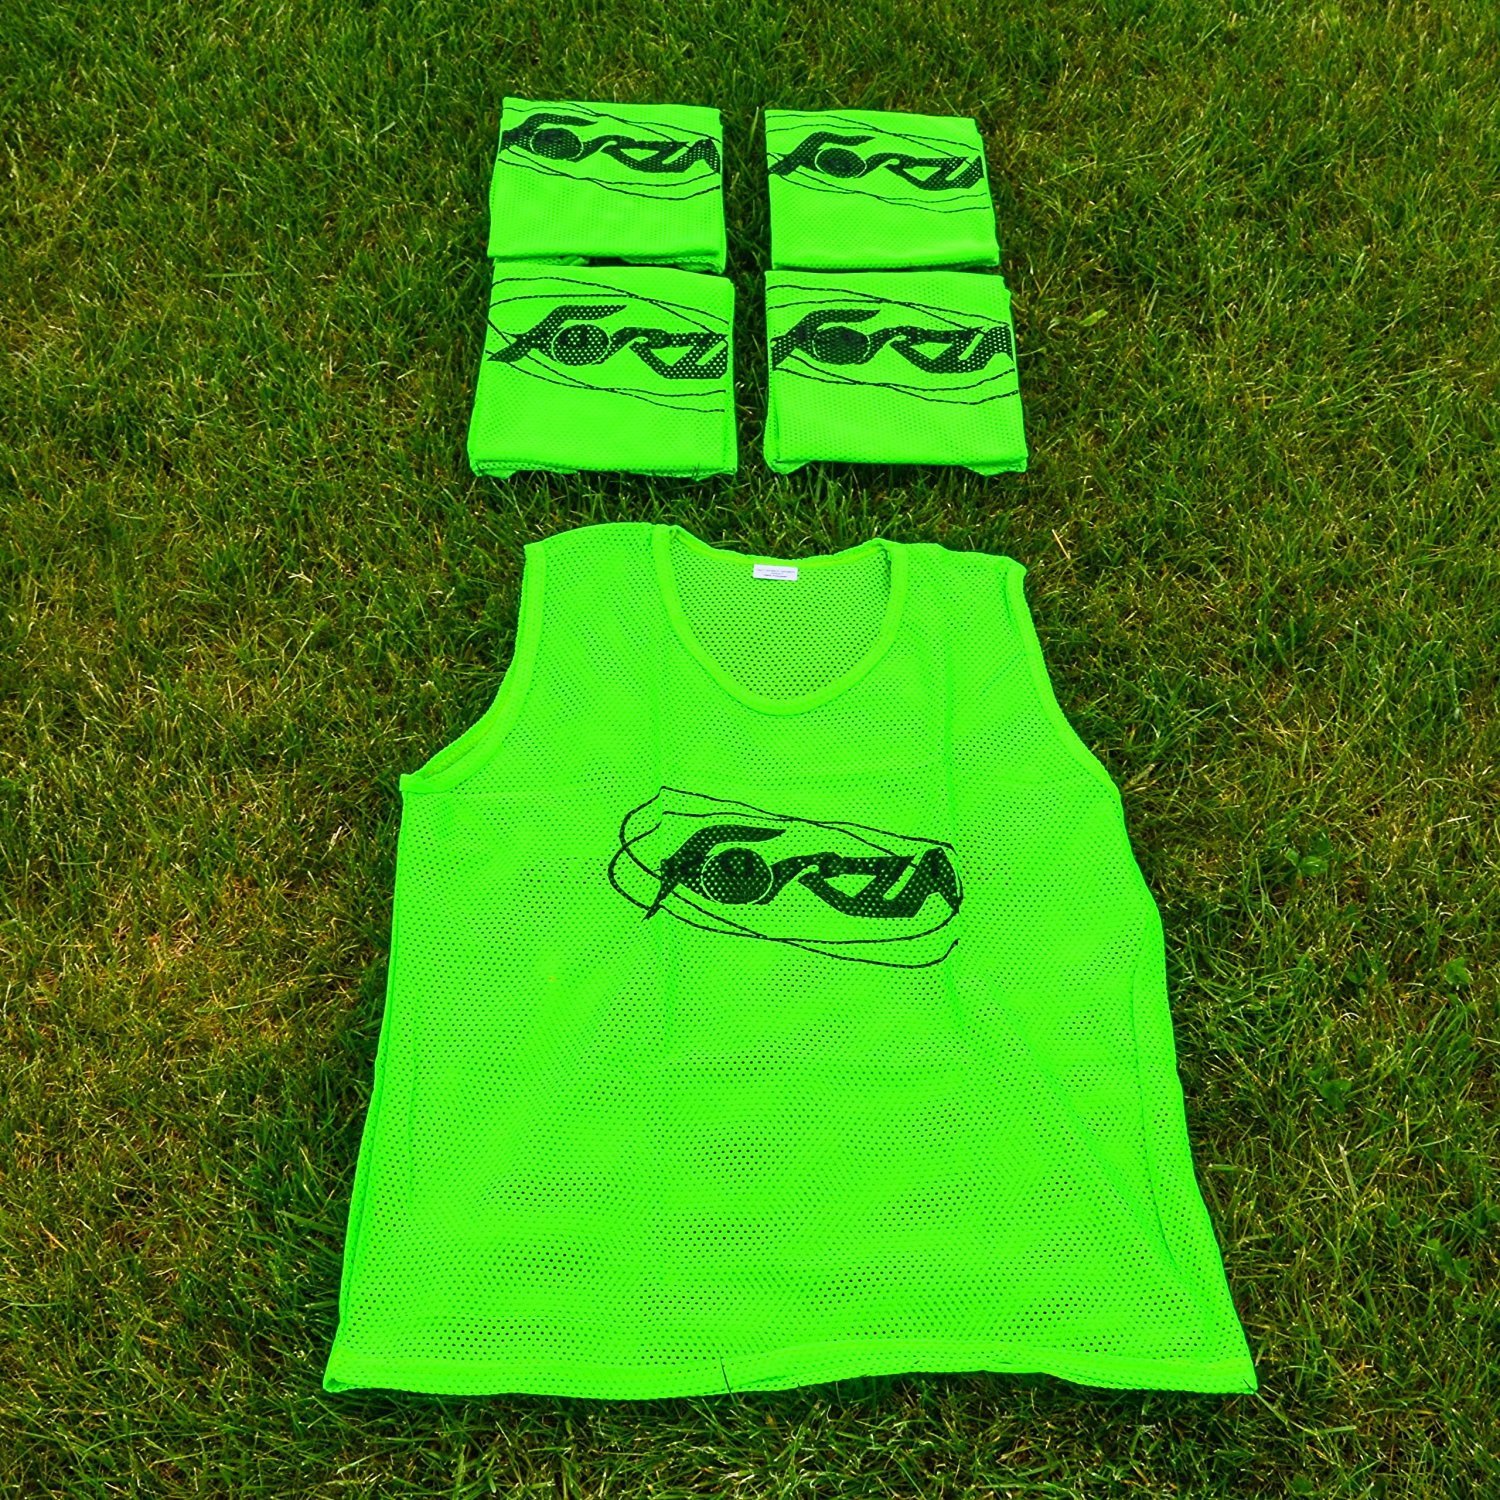 Choose Your Colour & Size Ranging From Kids To XL 15 Pack - Perfect For Football & Rugby Teams Net World Sports FORZA Training Bibs/Vests